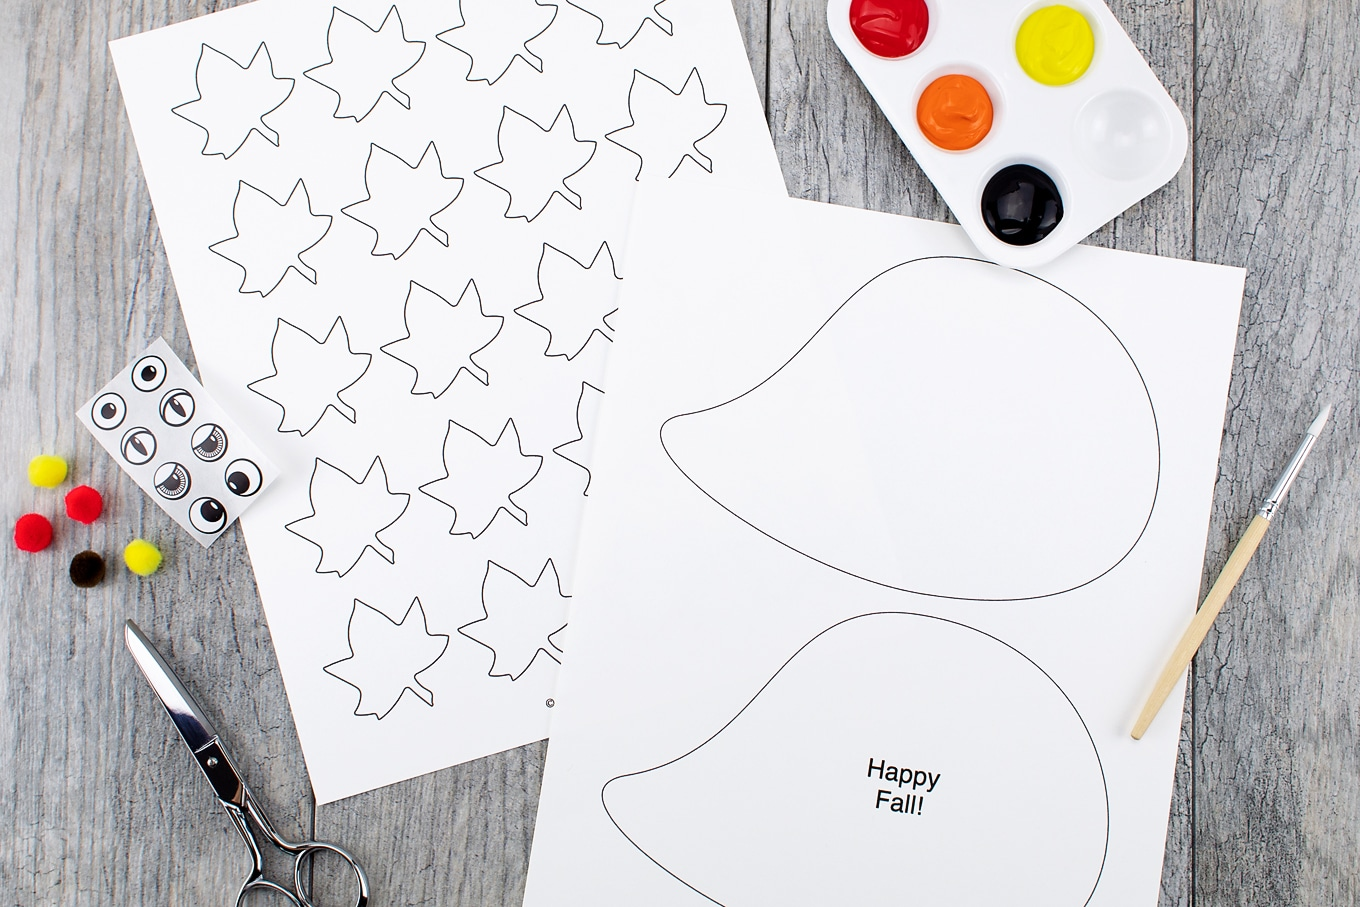 Materials Needed for Paper Hedgehog Craft